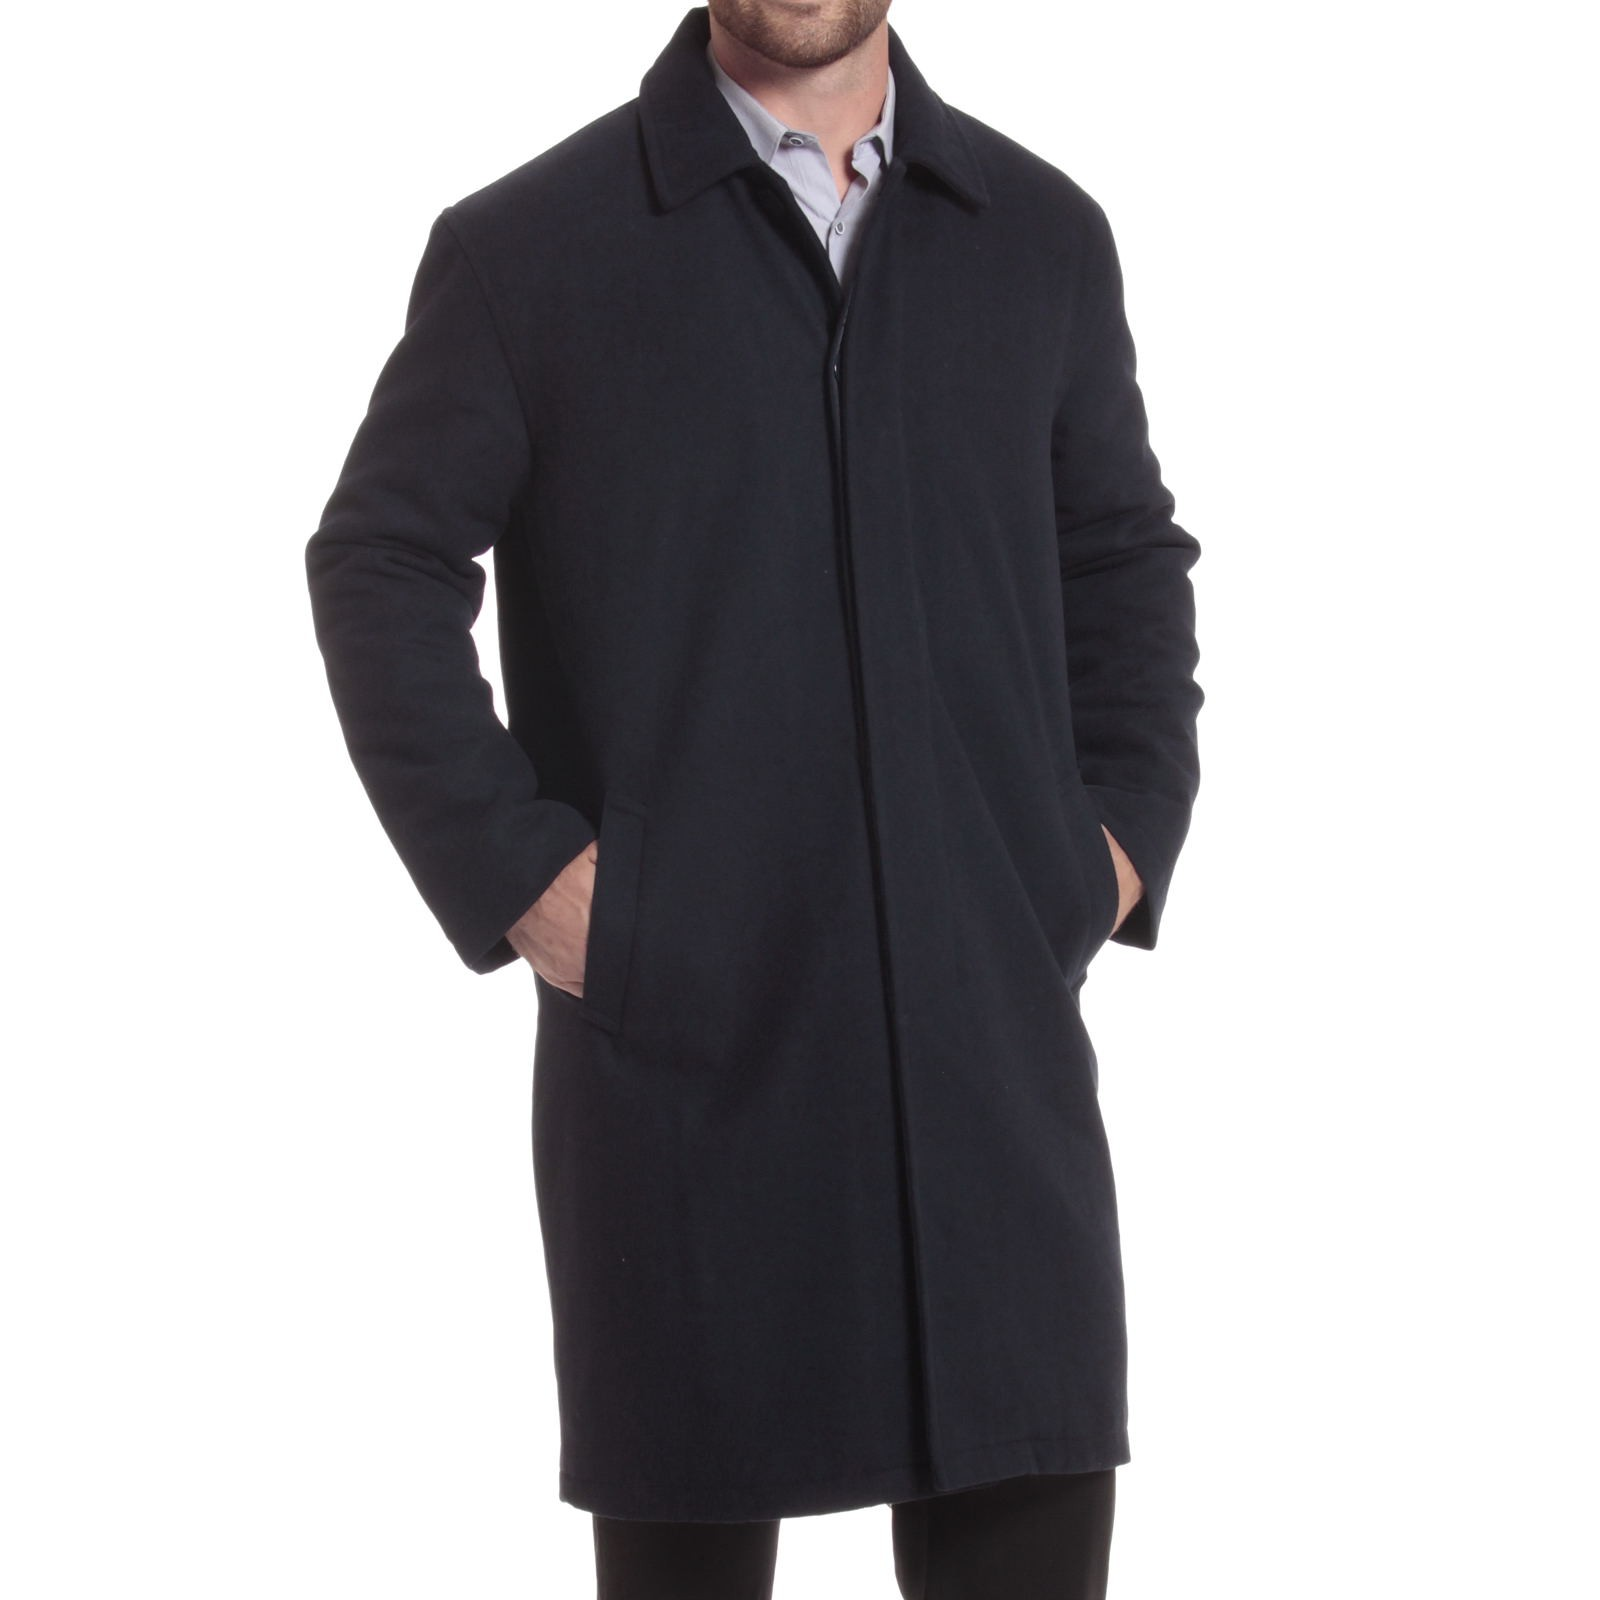 Alpine-Swiss-Mens-Zach-Knee-Length-Jacket-Top-Coat-Trench-Wool-Blend-Overcoat thumbnail 43